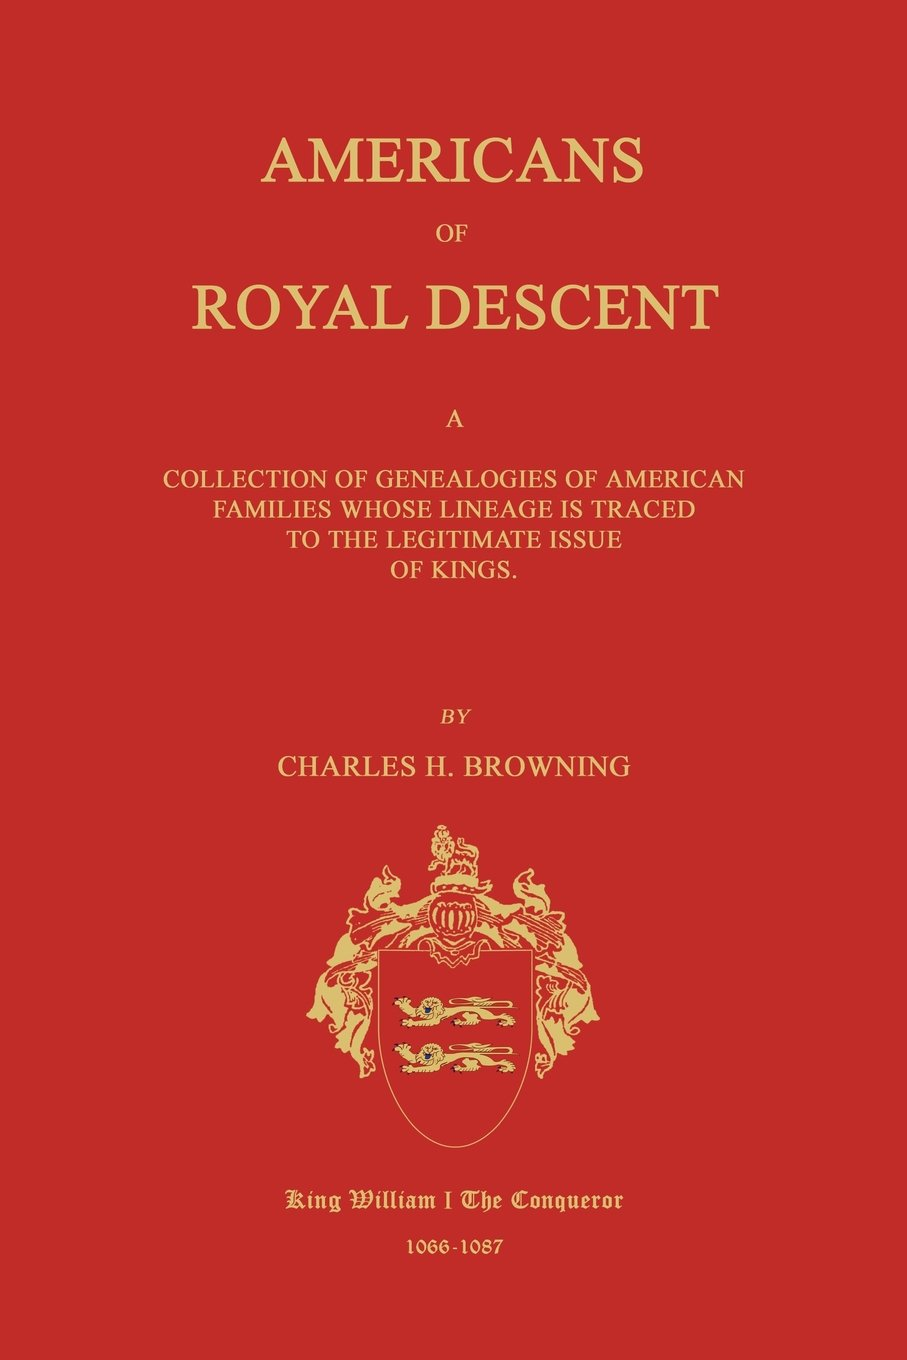 Americans of Royal Descent. A Collection of Genealogies of American Families Whose Lineage is Traced to the Legitmate Issue of Kings. Second Edition pdf